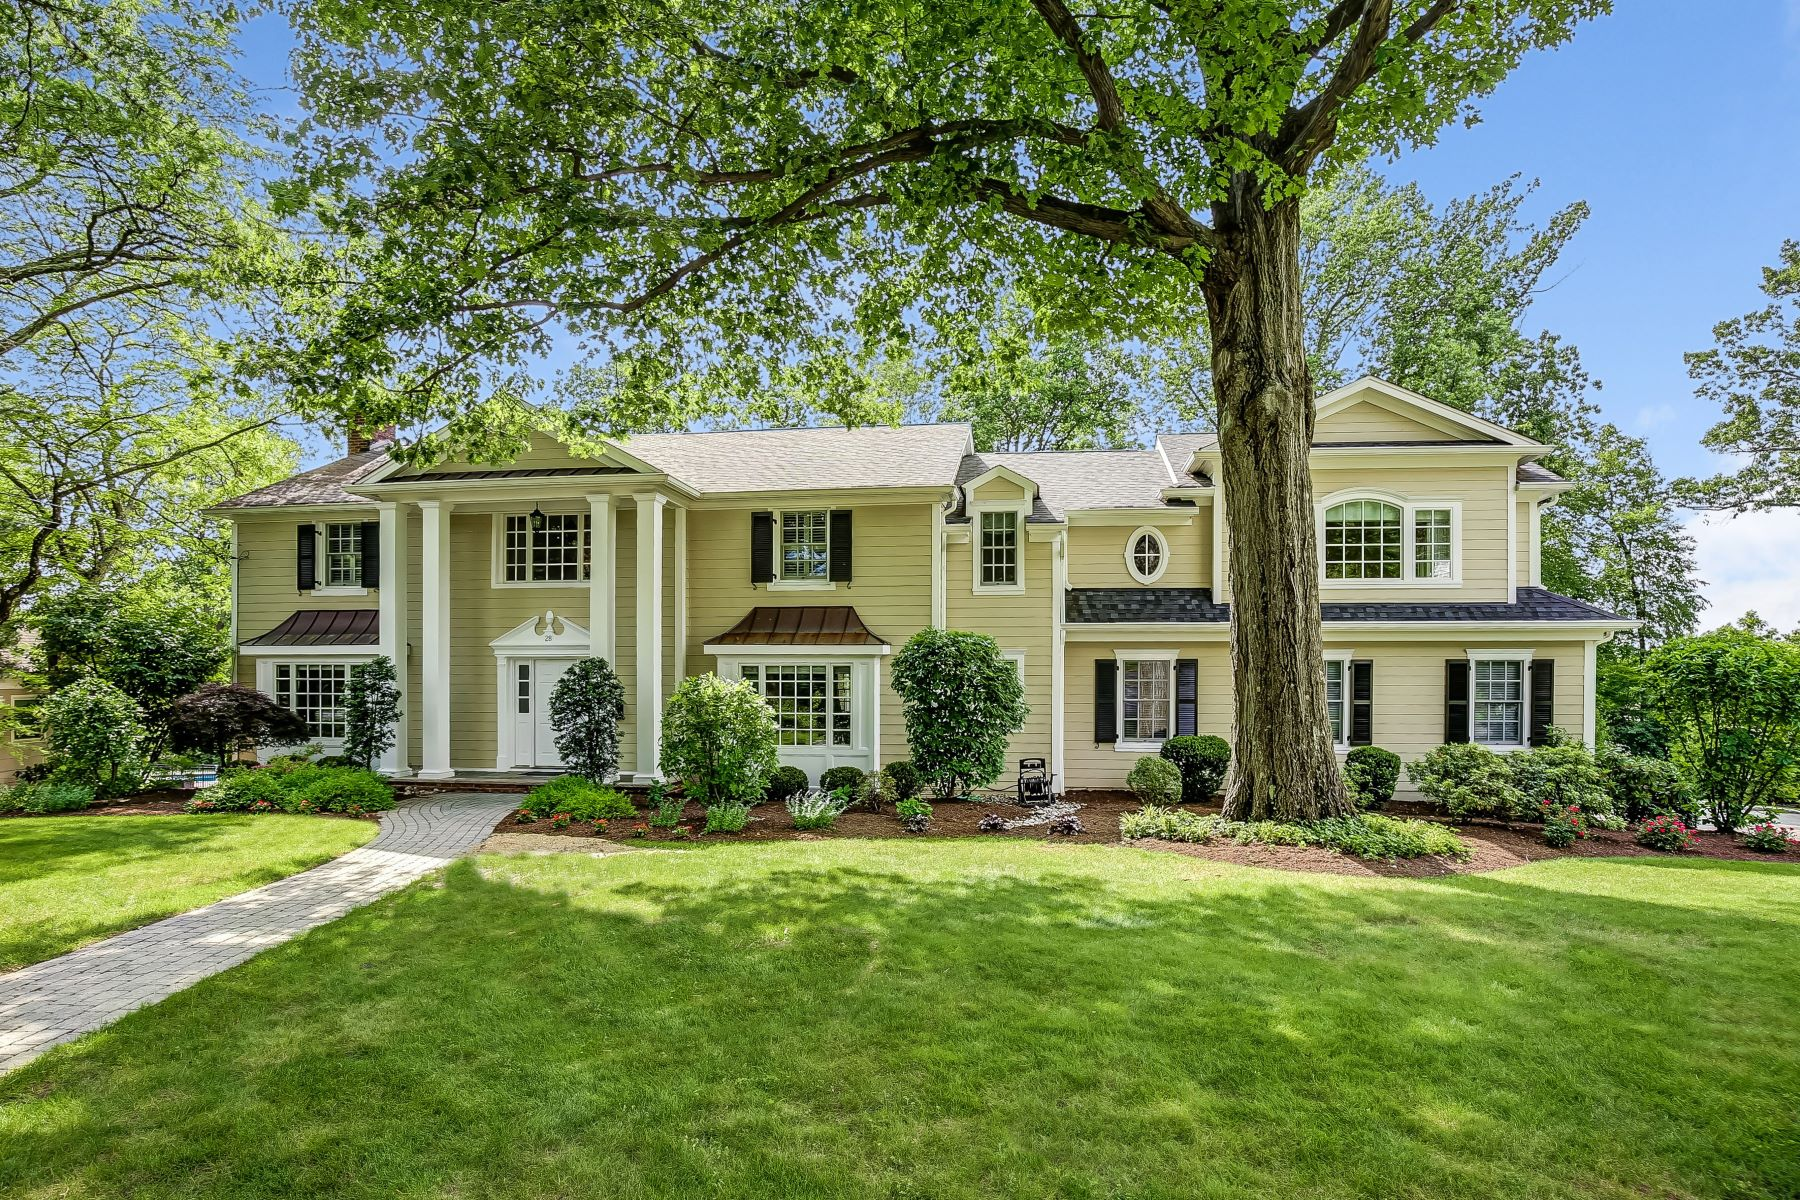 House for Sale at Impressive Classic Colonial 28 Farbrook Drive Short Hills, New Jersey 07078 United States